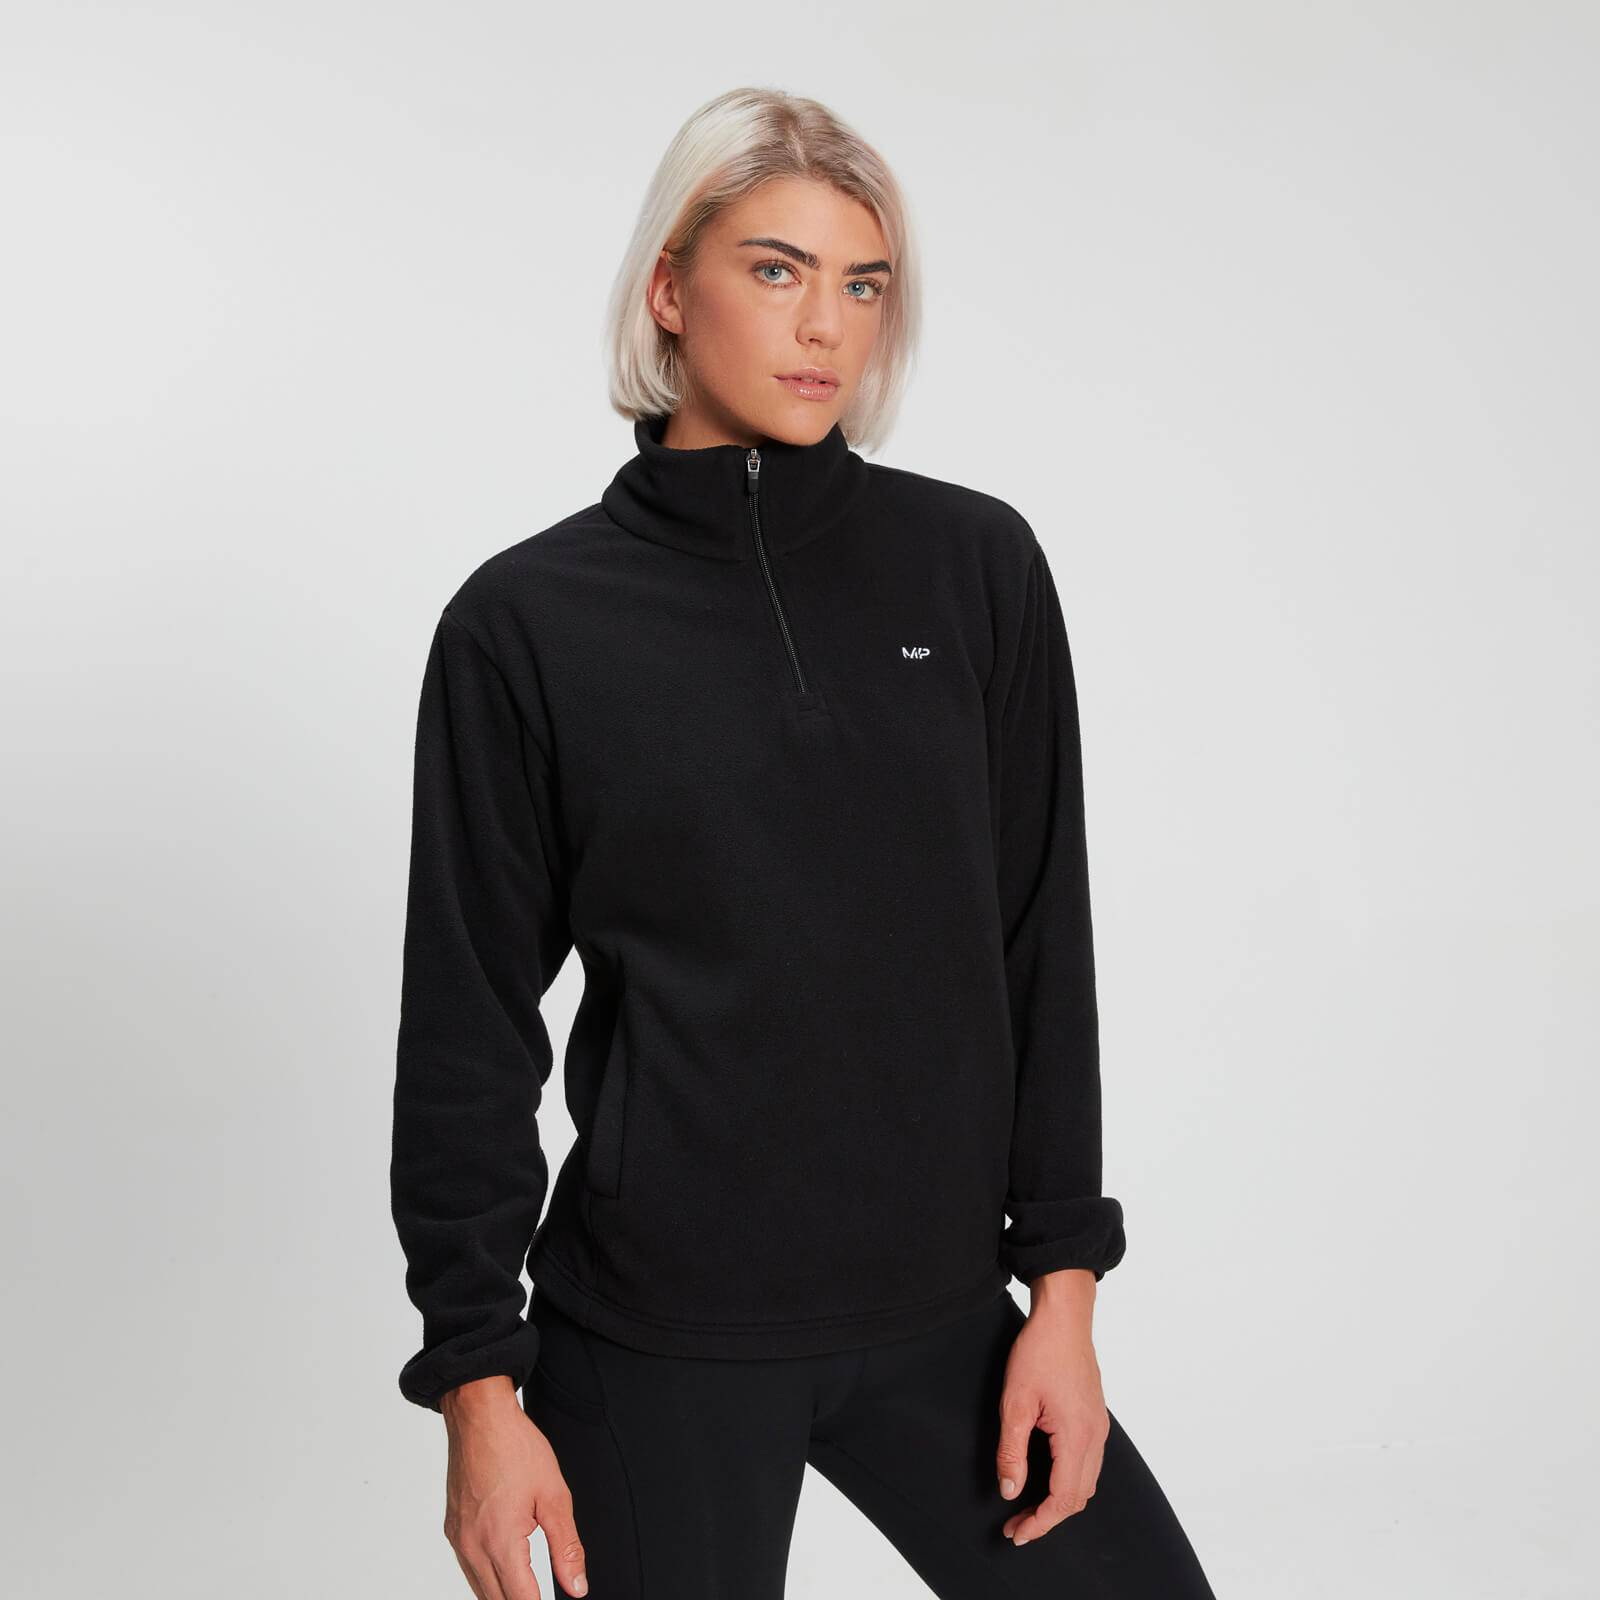 Mp Felpa  Essentials da donna - Nero - L